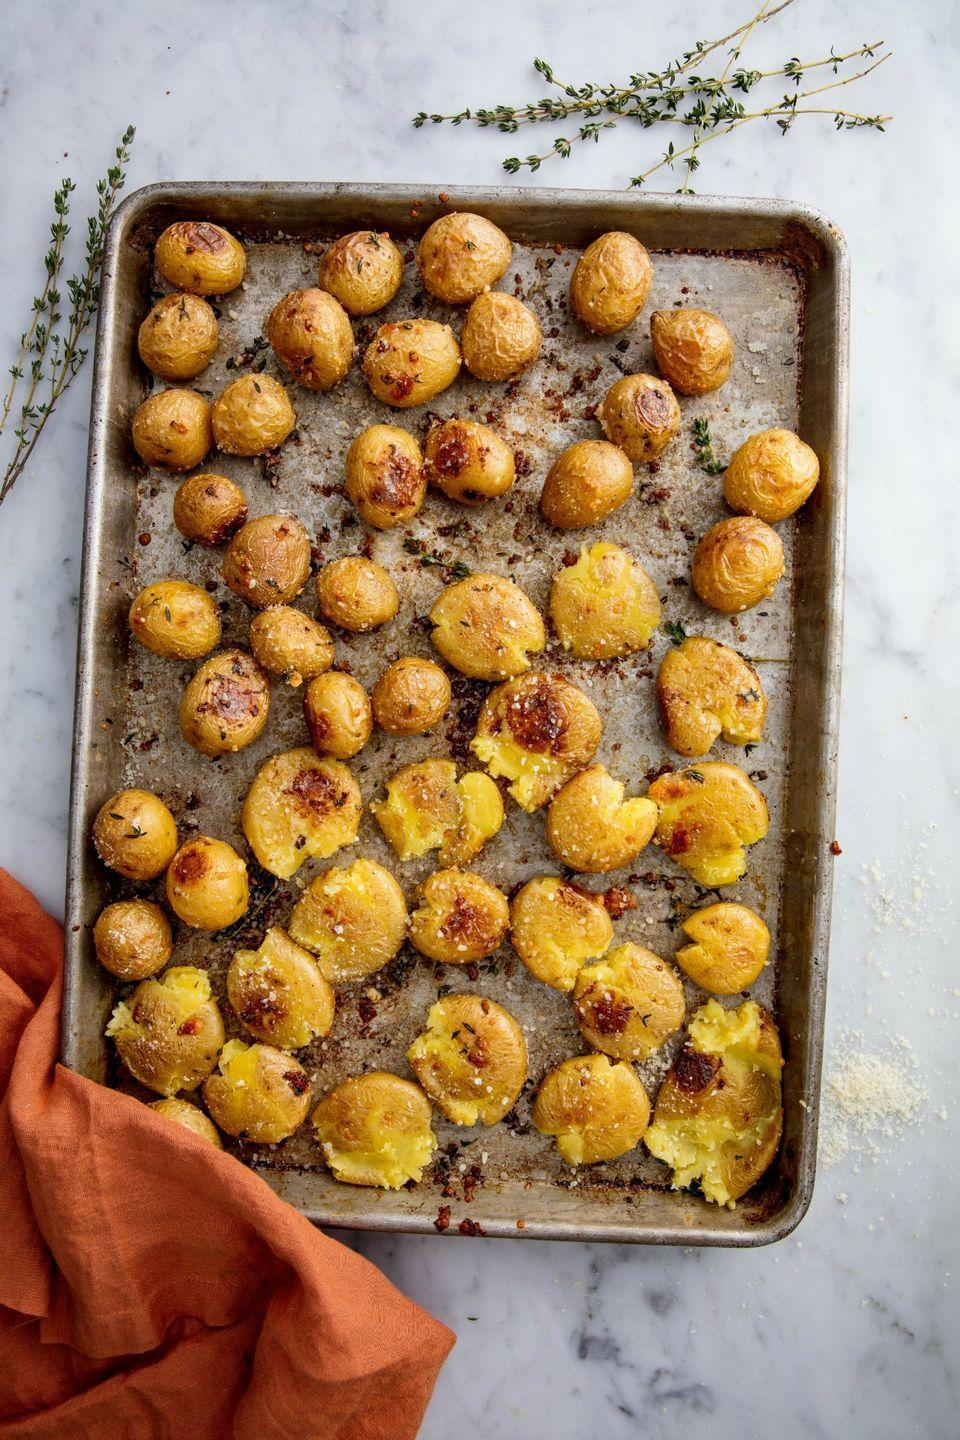 """<p>Garlic and parm go a long way to make these taters SO flavorful.</p><p>Get the recipe from <a href=""""https://www.delish.com/cooking/recipe-ideas/recipes/a49007/garlic-smashed-potatoes-recipe/"""" rel=""""nofollow noopener"""" target=""""_blank"""" data-ylk=""""slk:Delish"""" class=""""link rapid-noclick-resp"""">Delish</a>. </p>"""